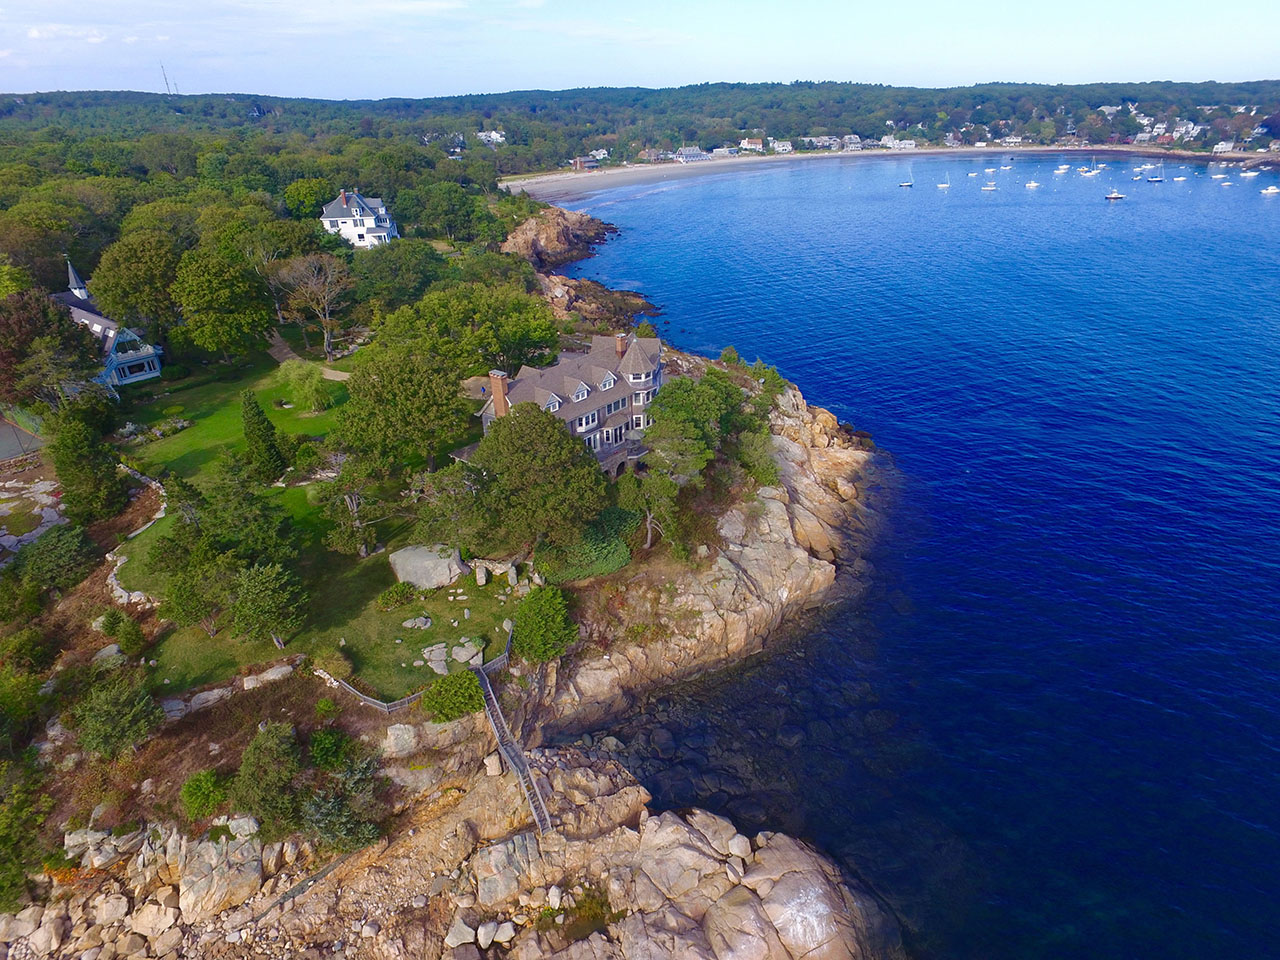 As if taking on the role of a sentinel, Kettledrum overlooks Kettle Cove, Kettle Island, and the open waters of the Atlantic Ocean keeping watch on paddleboarders, kayakers, sailors, and lobstermen as they pass by.